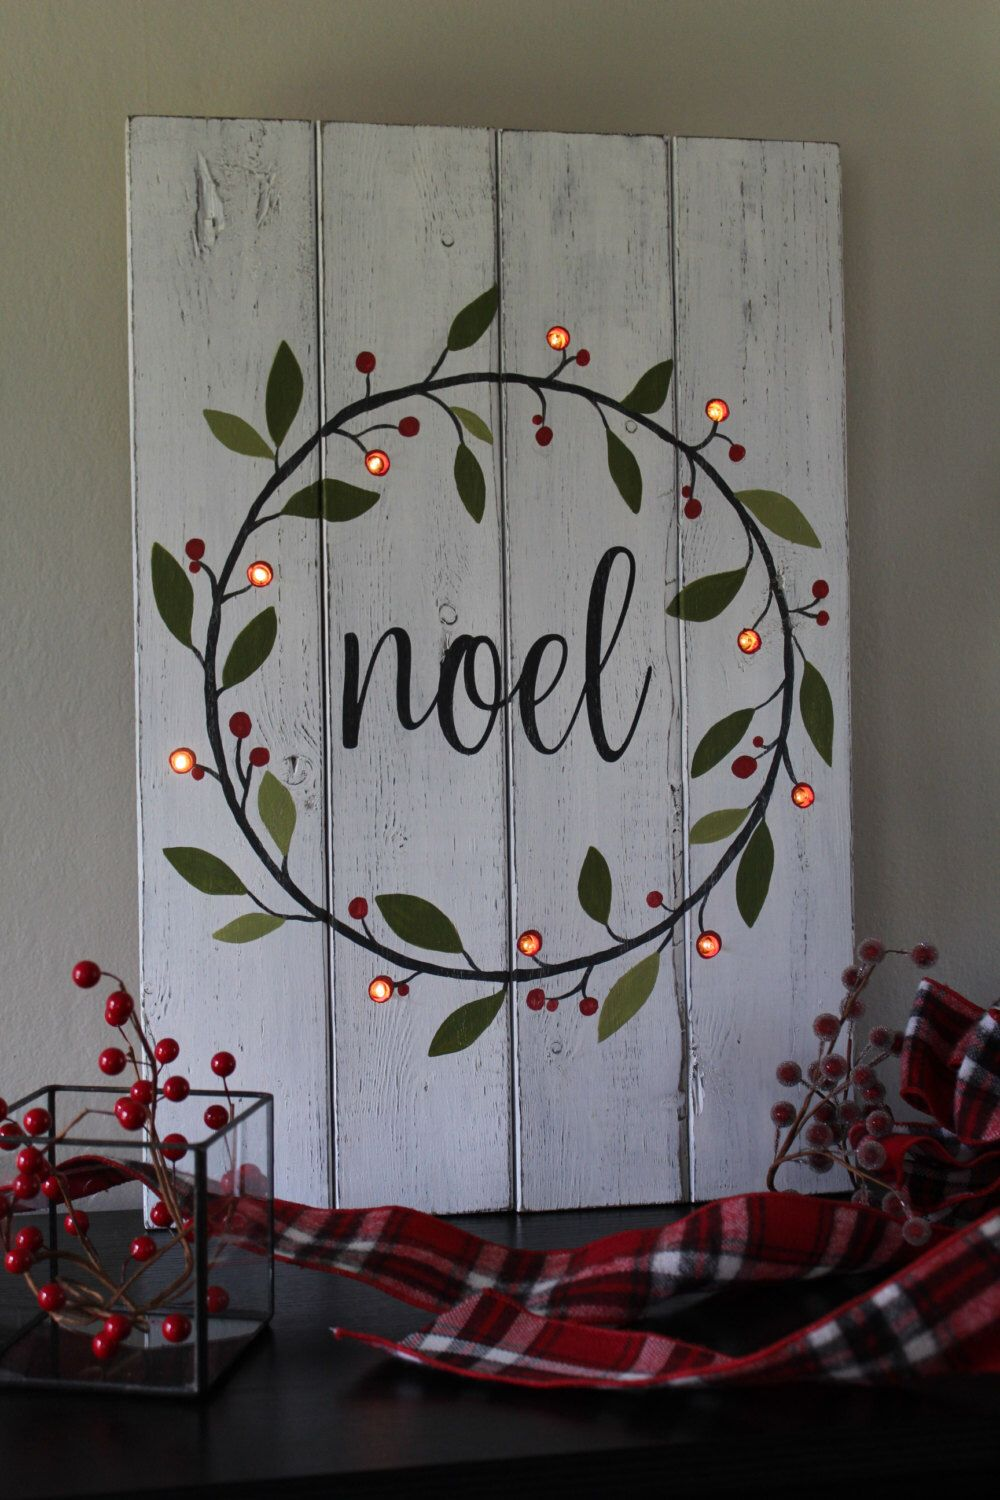 noel sign lighted christmas sign hand painted wood sign lighted christmas wreath rustic home decor mantle